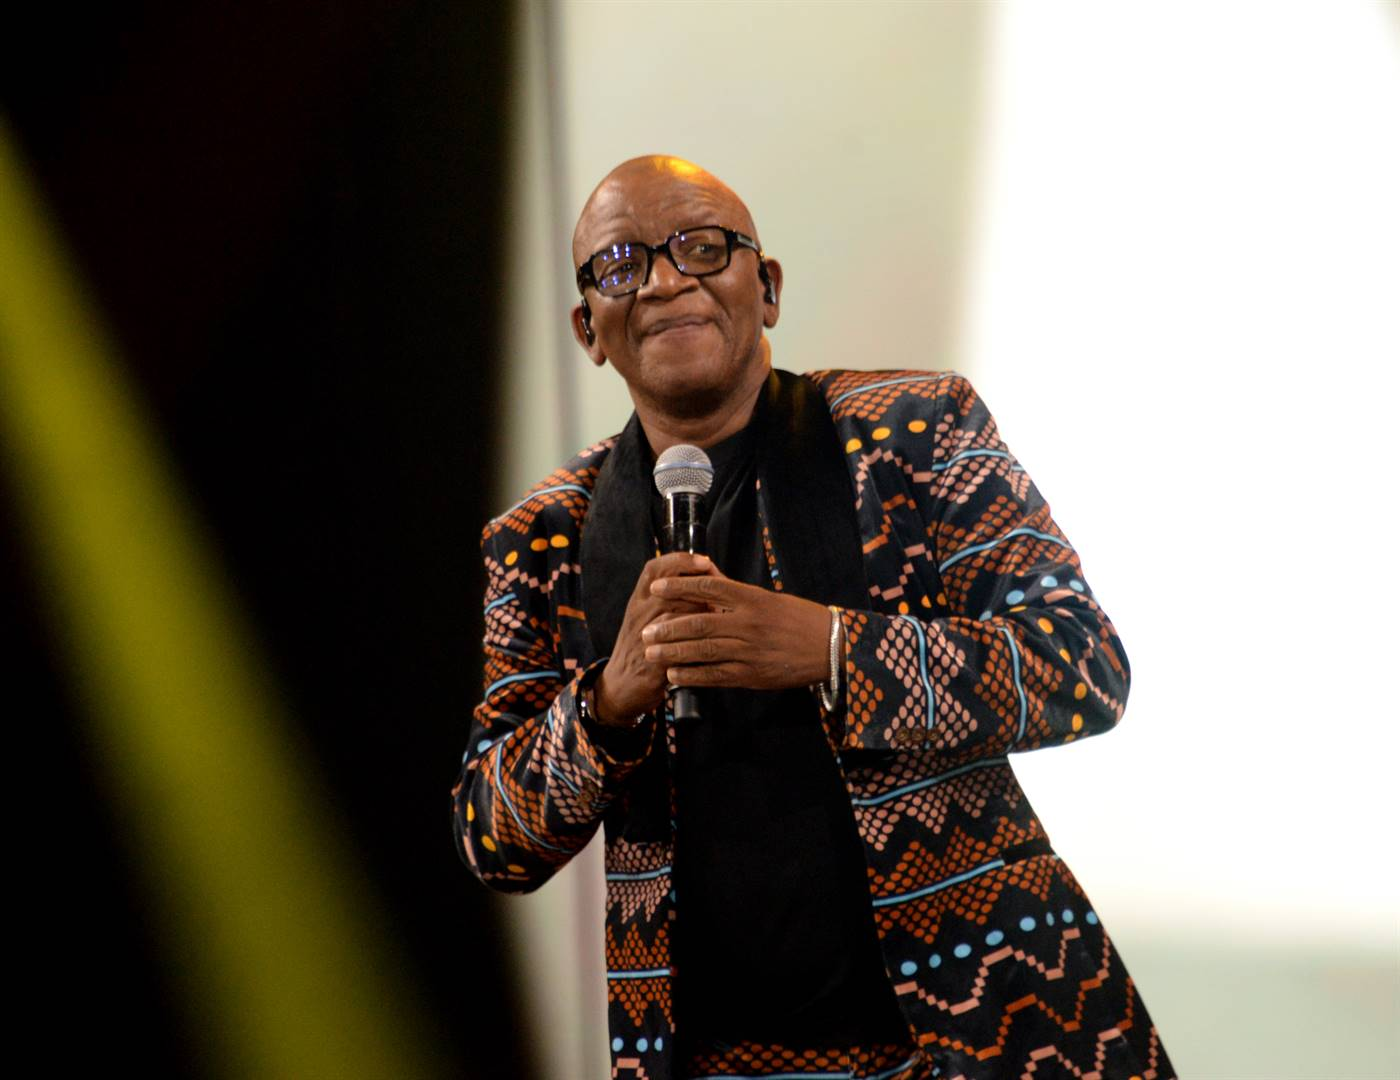 Lebo M says his birthday wish is to have retrial of his son's death. Photo: Oupa Bopape / Gallo Images